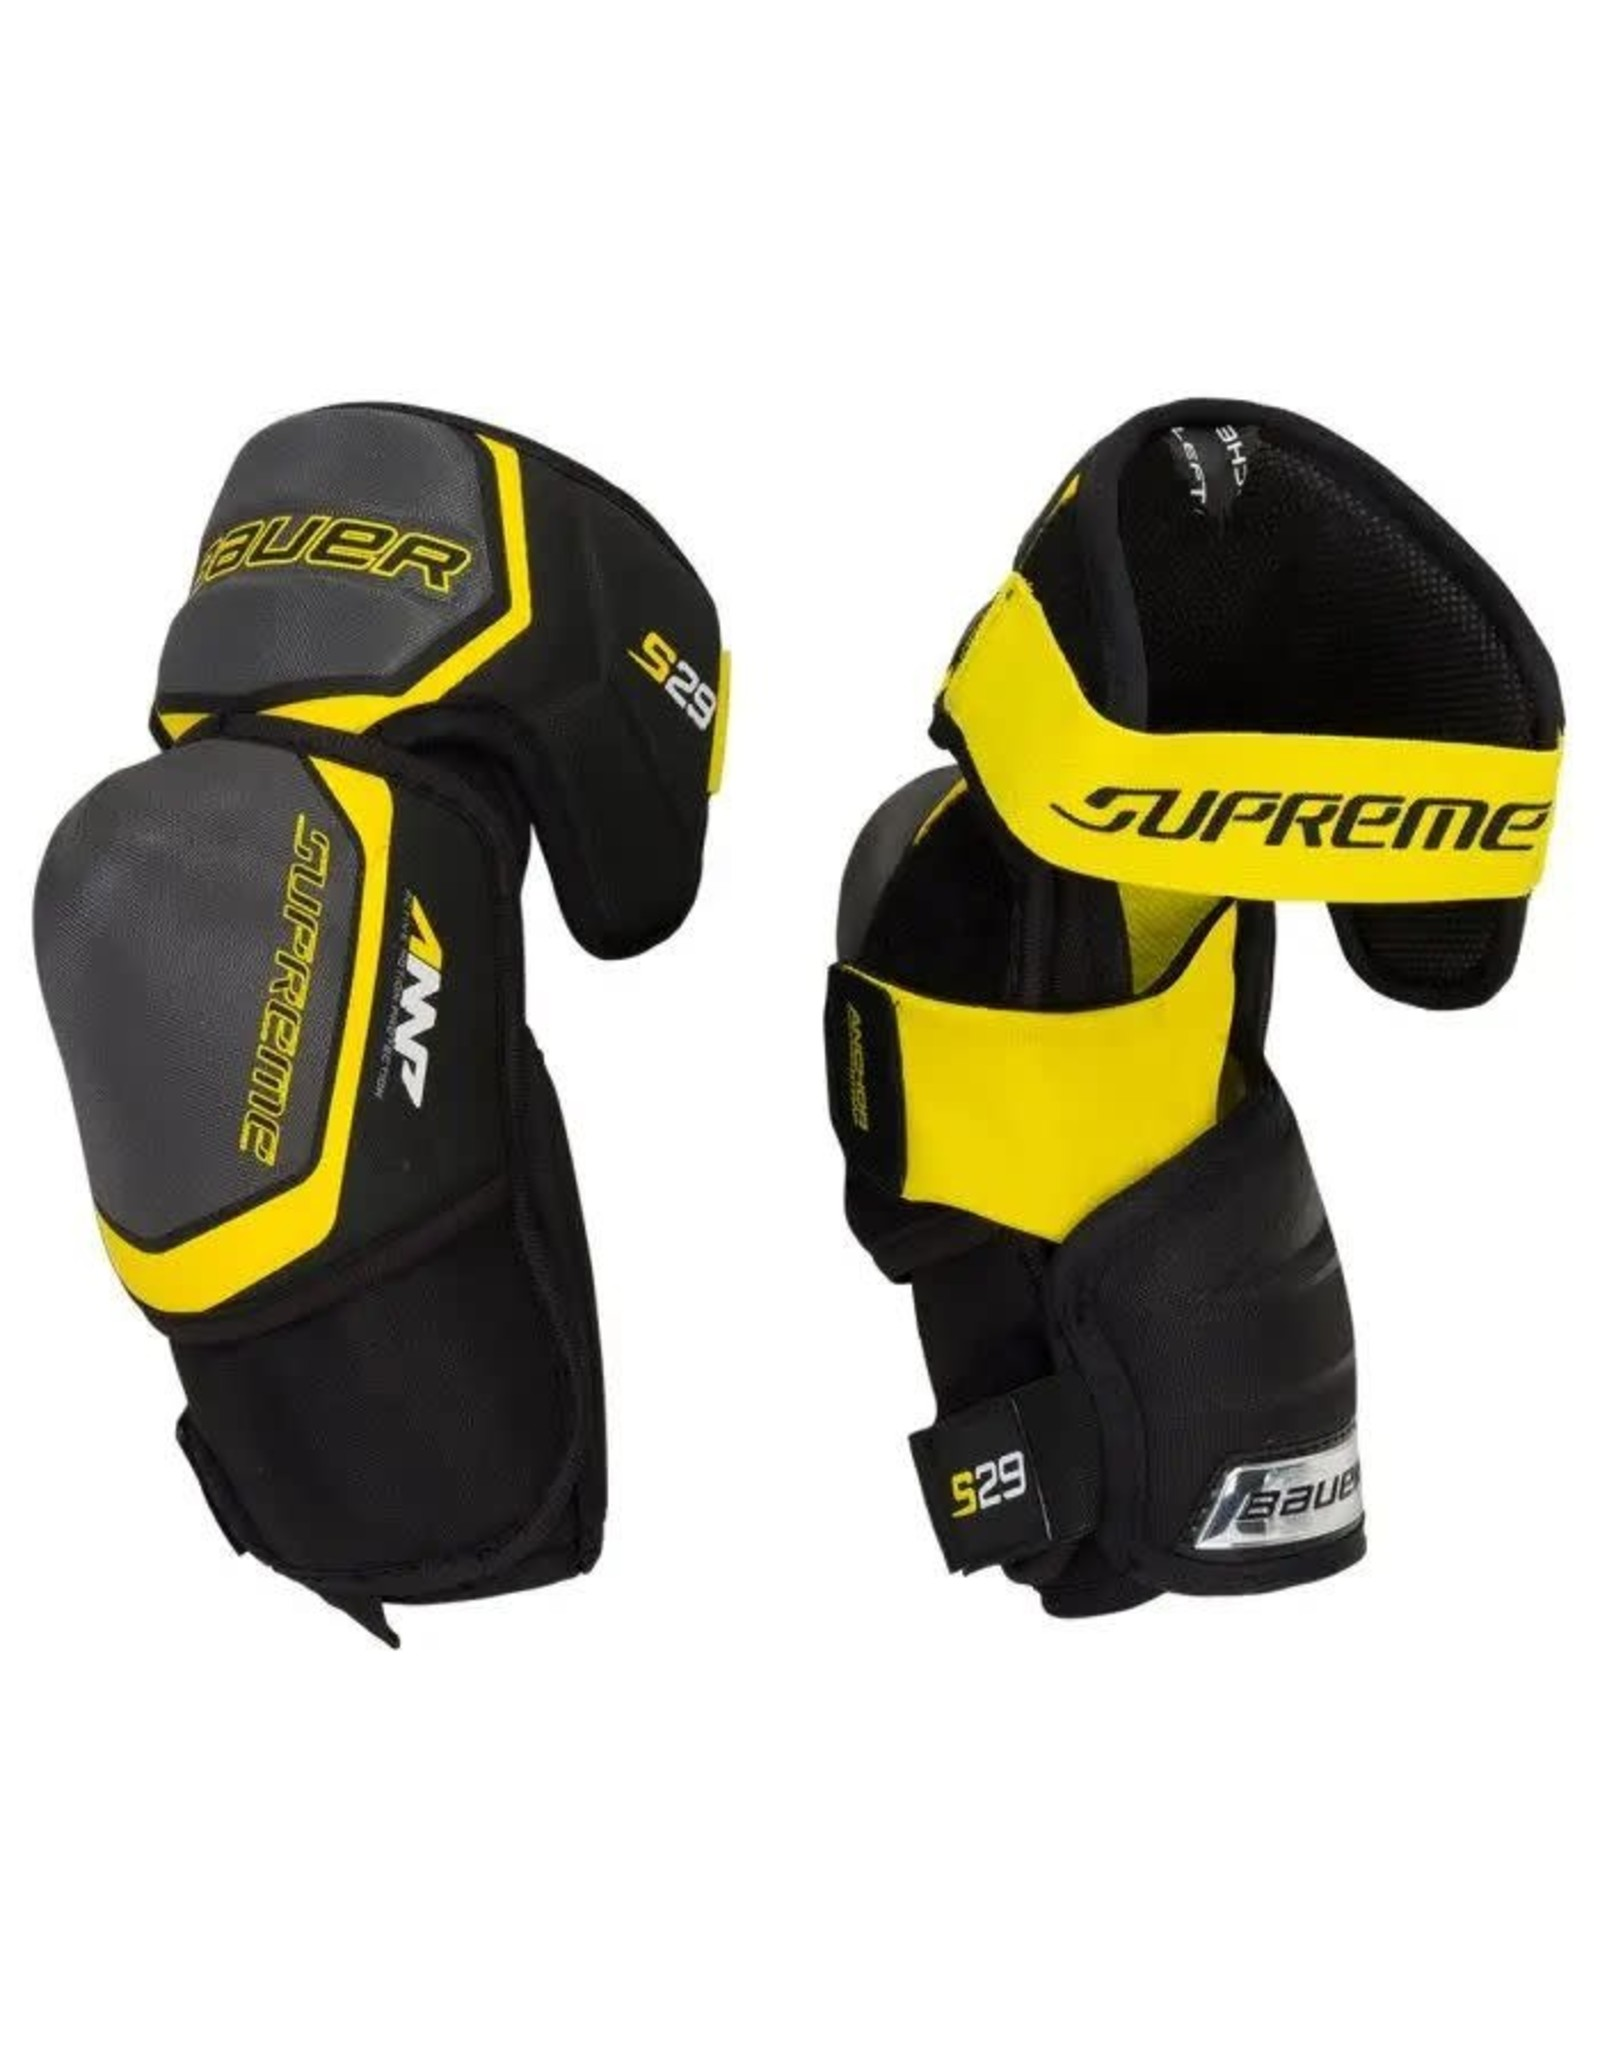 BAUER Supreme S29, Senior, Elbow Pads